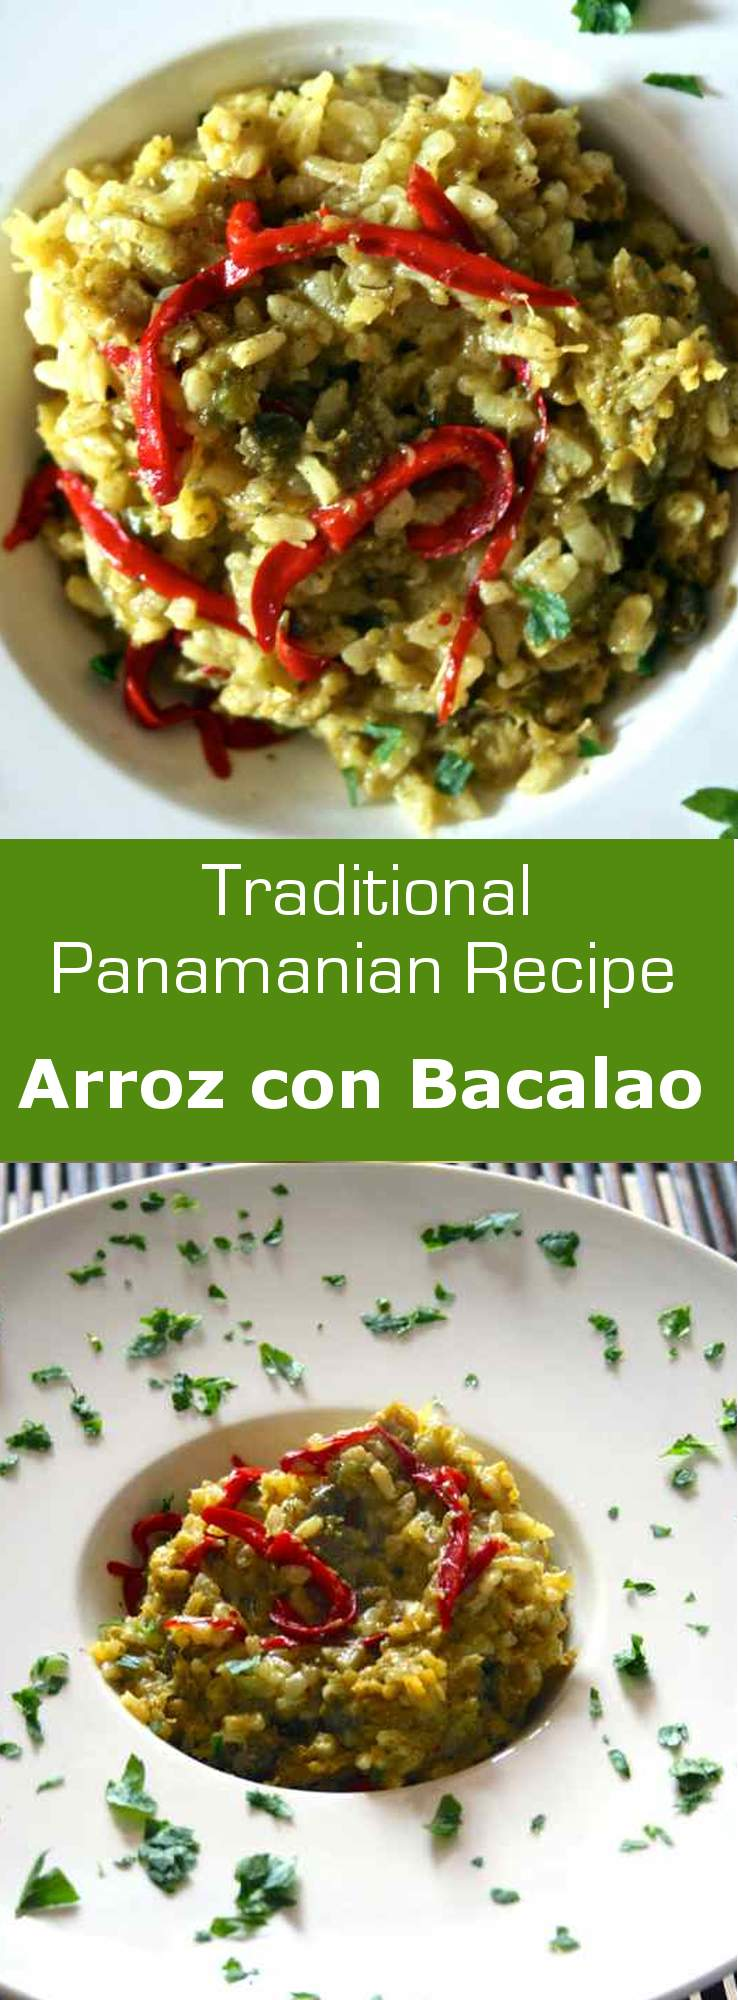 Arroz con bacalao, or rice with salted cod is a delicious one-pot meal popular throughout the Spanish speaking islands, including Panama. #fish #rice #entree #maindish #panama #latincuisine